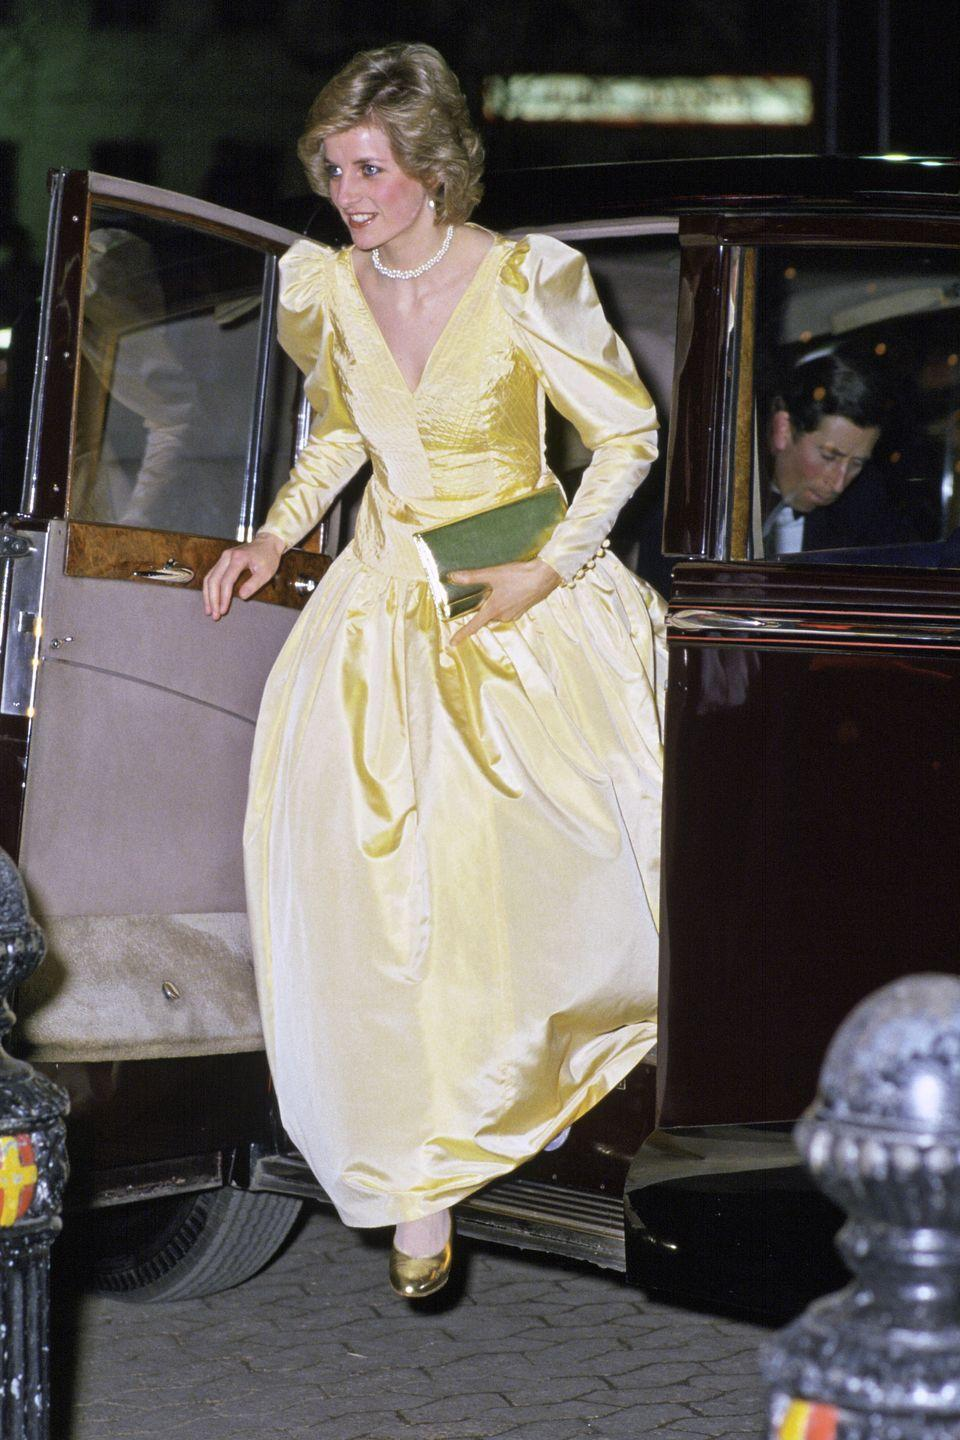 <p>Princess Diana looked absolutely radiant arriving at a London film premiere in a satin ball gown designed by Murray Arbeid in 1985. From the pale yellow color to the full skirt silhouette, the Princess looked just like Belle.</p>